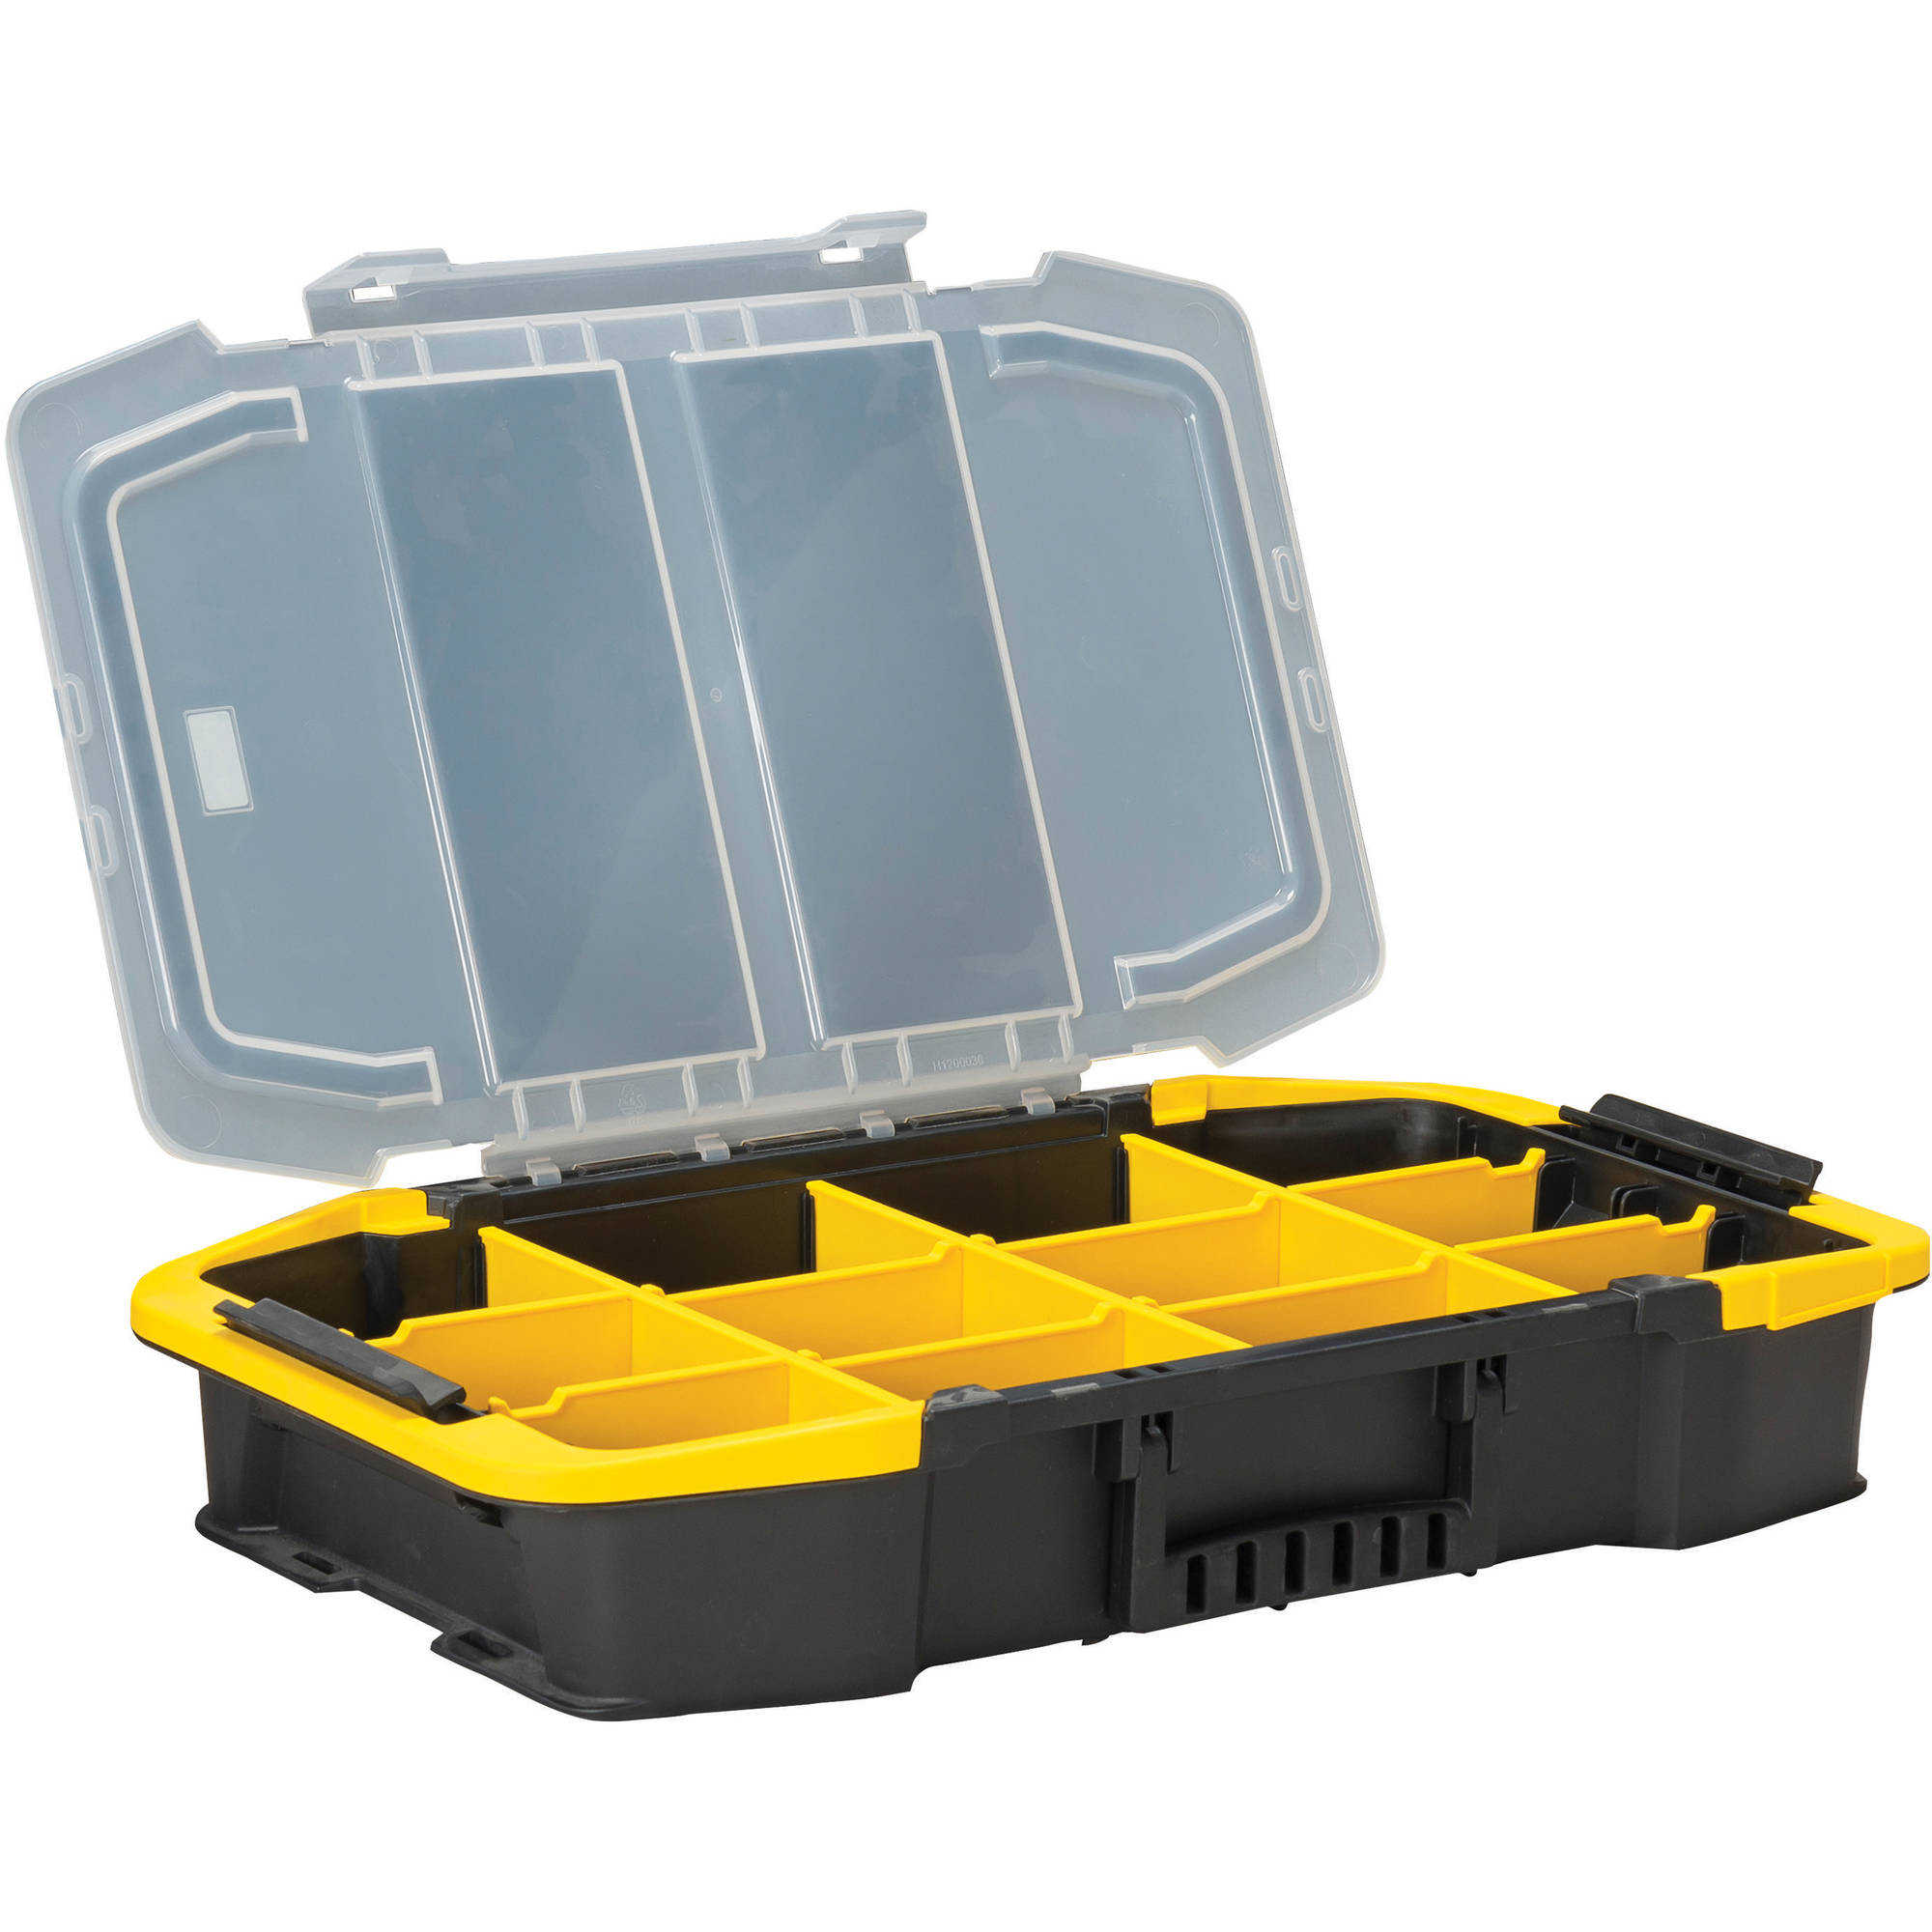 Stanley 19-13/16, Tool Organizer, Hand Carry, Plastic, Black/Clear/Yellow, STST14440